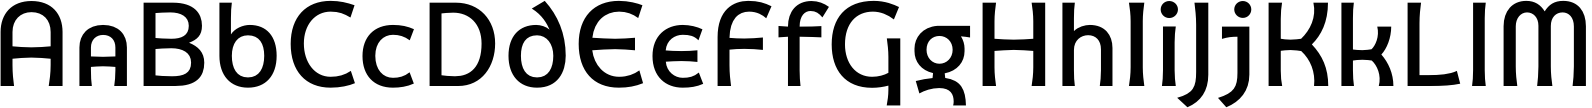 Magma Alternate Regular Font